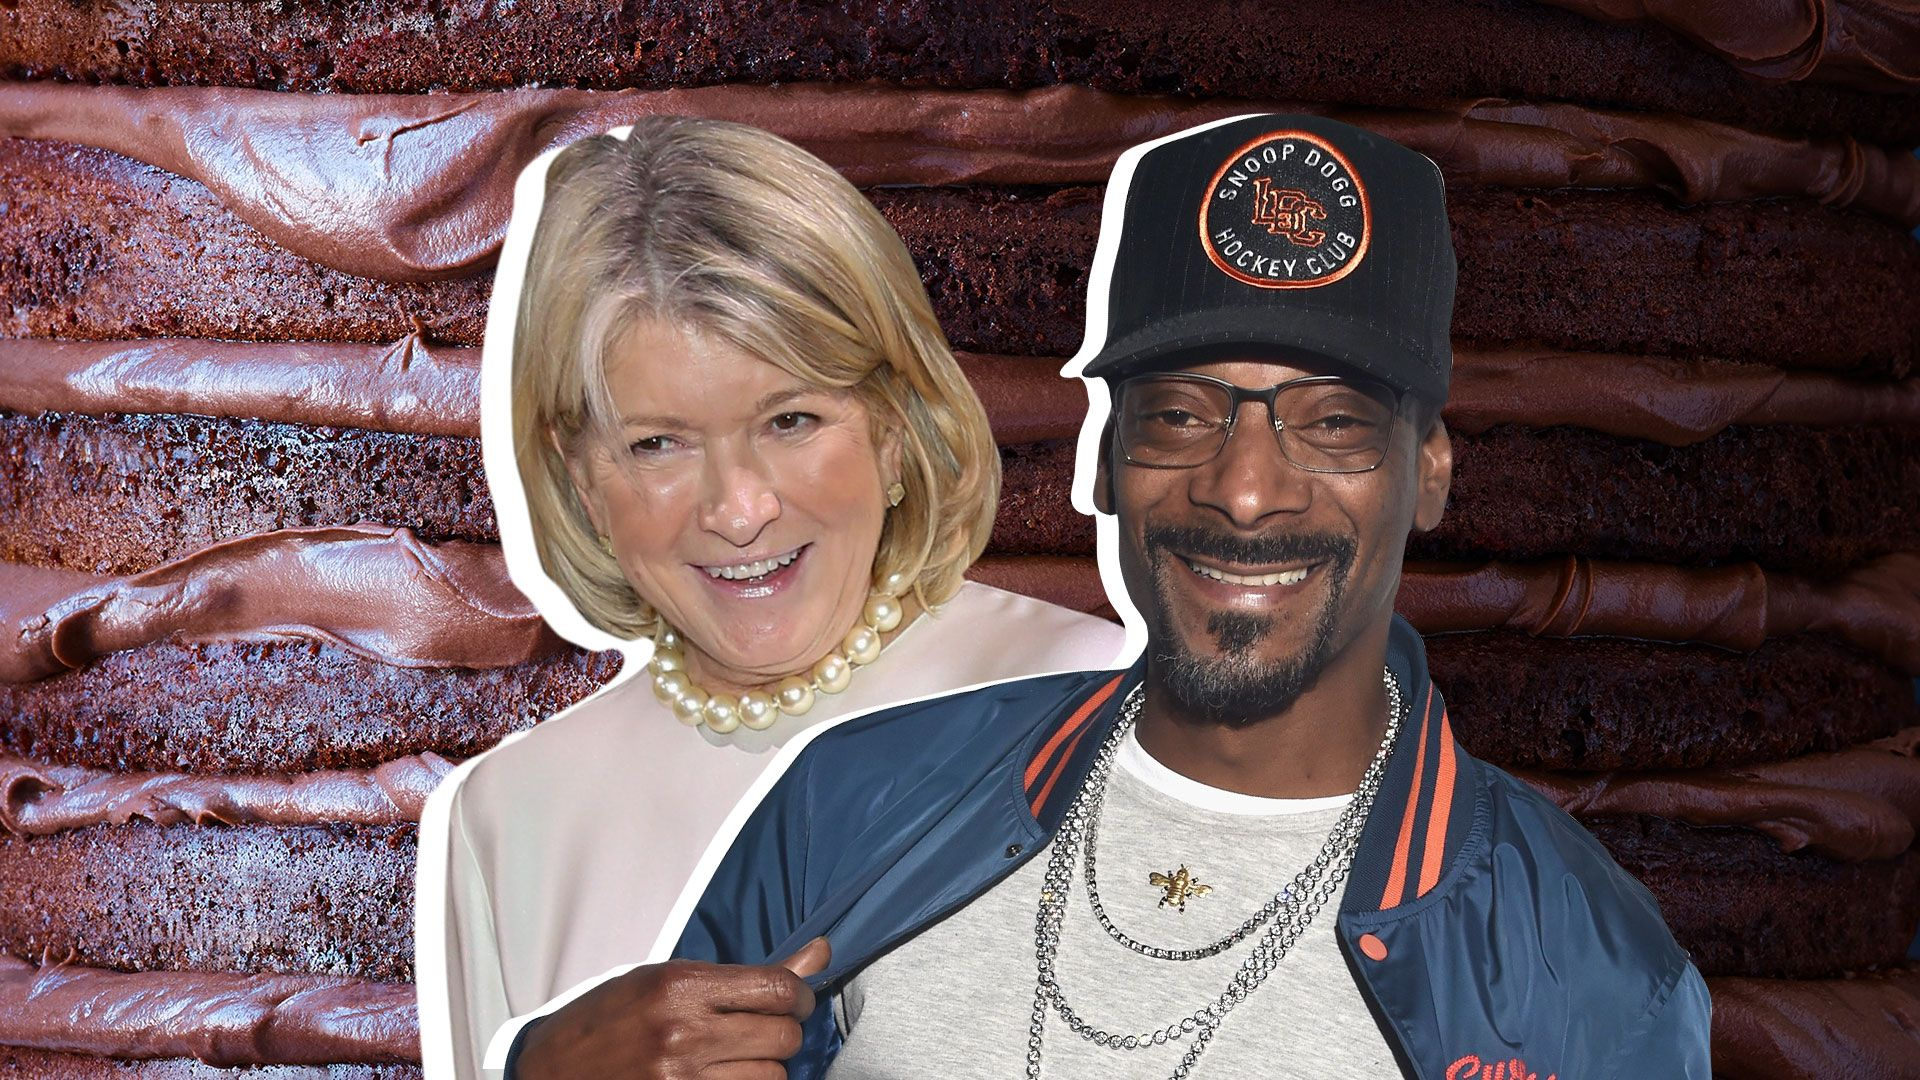 Martha Stewart Vs Snoop Dogg Whose Chocolate Cake Is Better